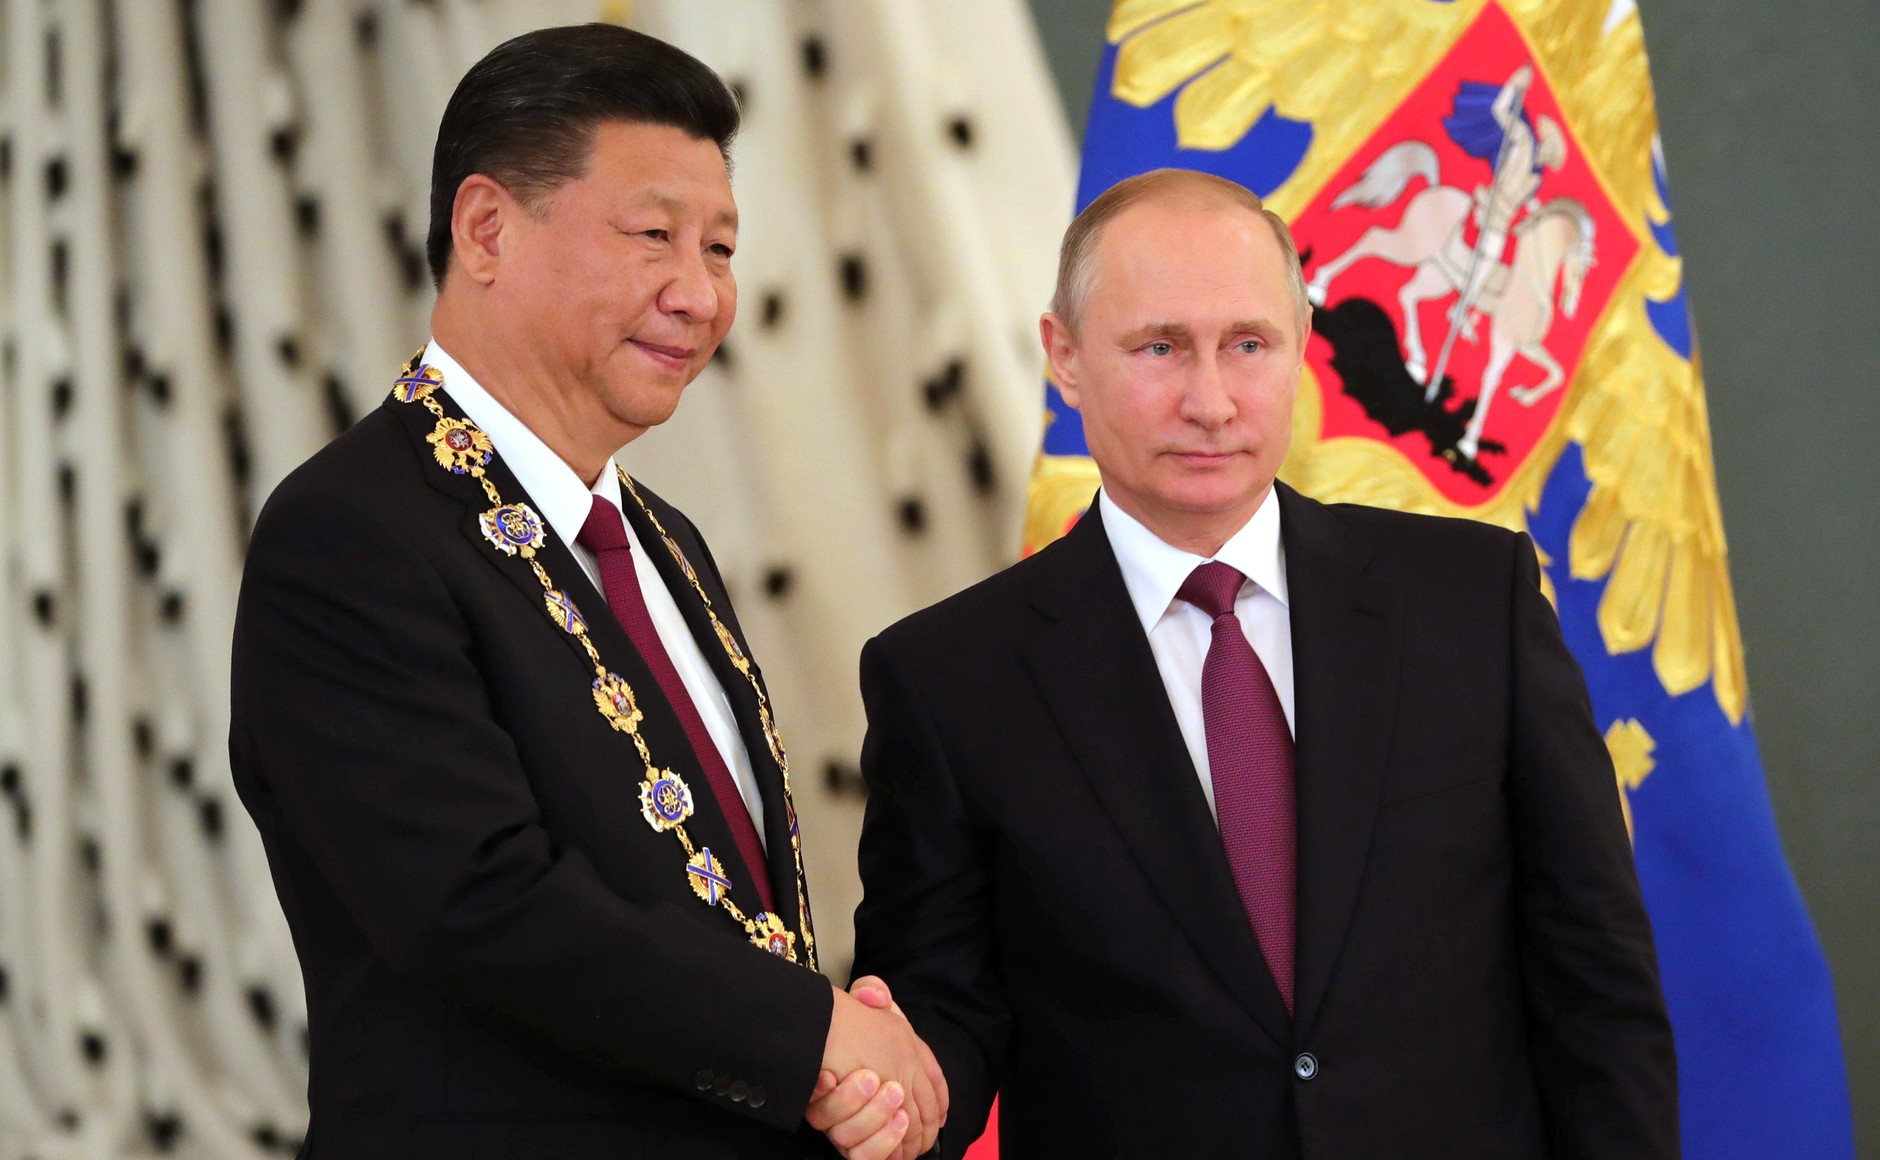 Vladimir Putin presented Xi Jinping with the Order of St. Andrew, Moscow, July 4, 2017.